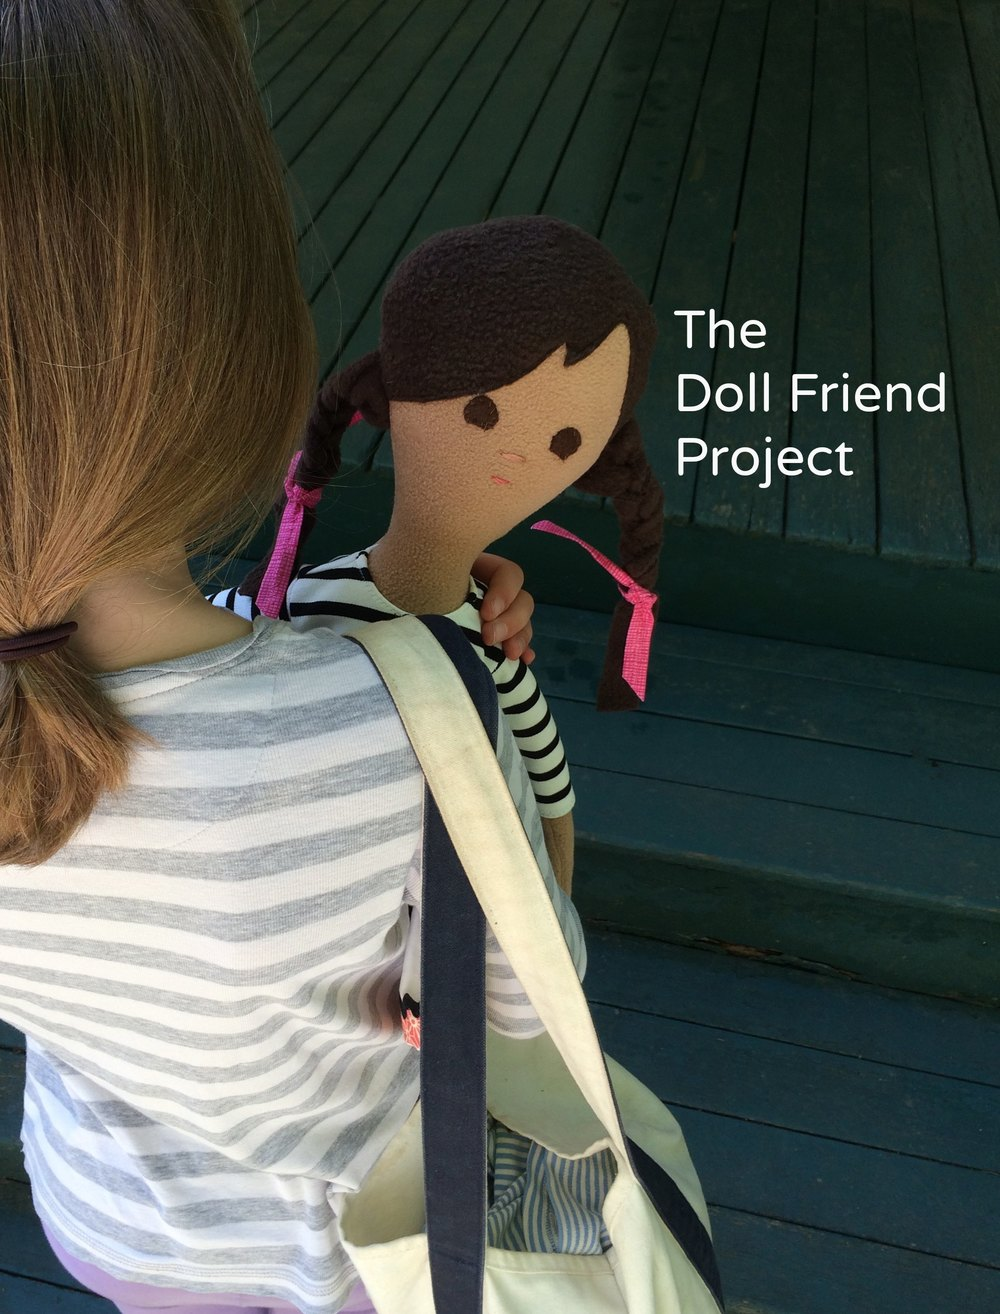 The Doll Friend Project